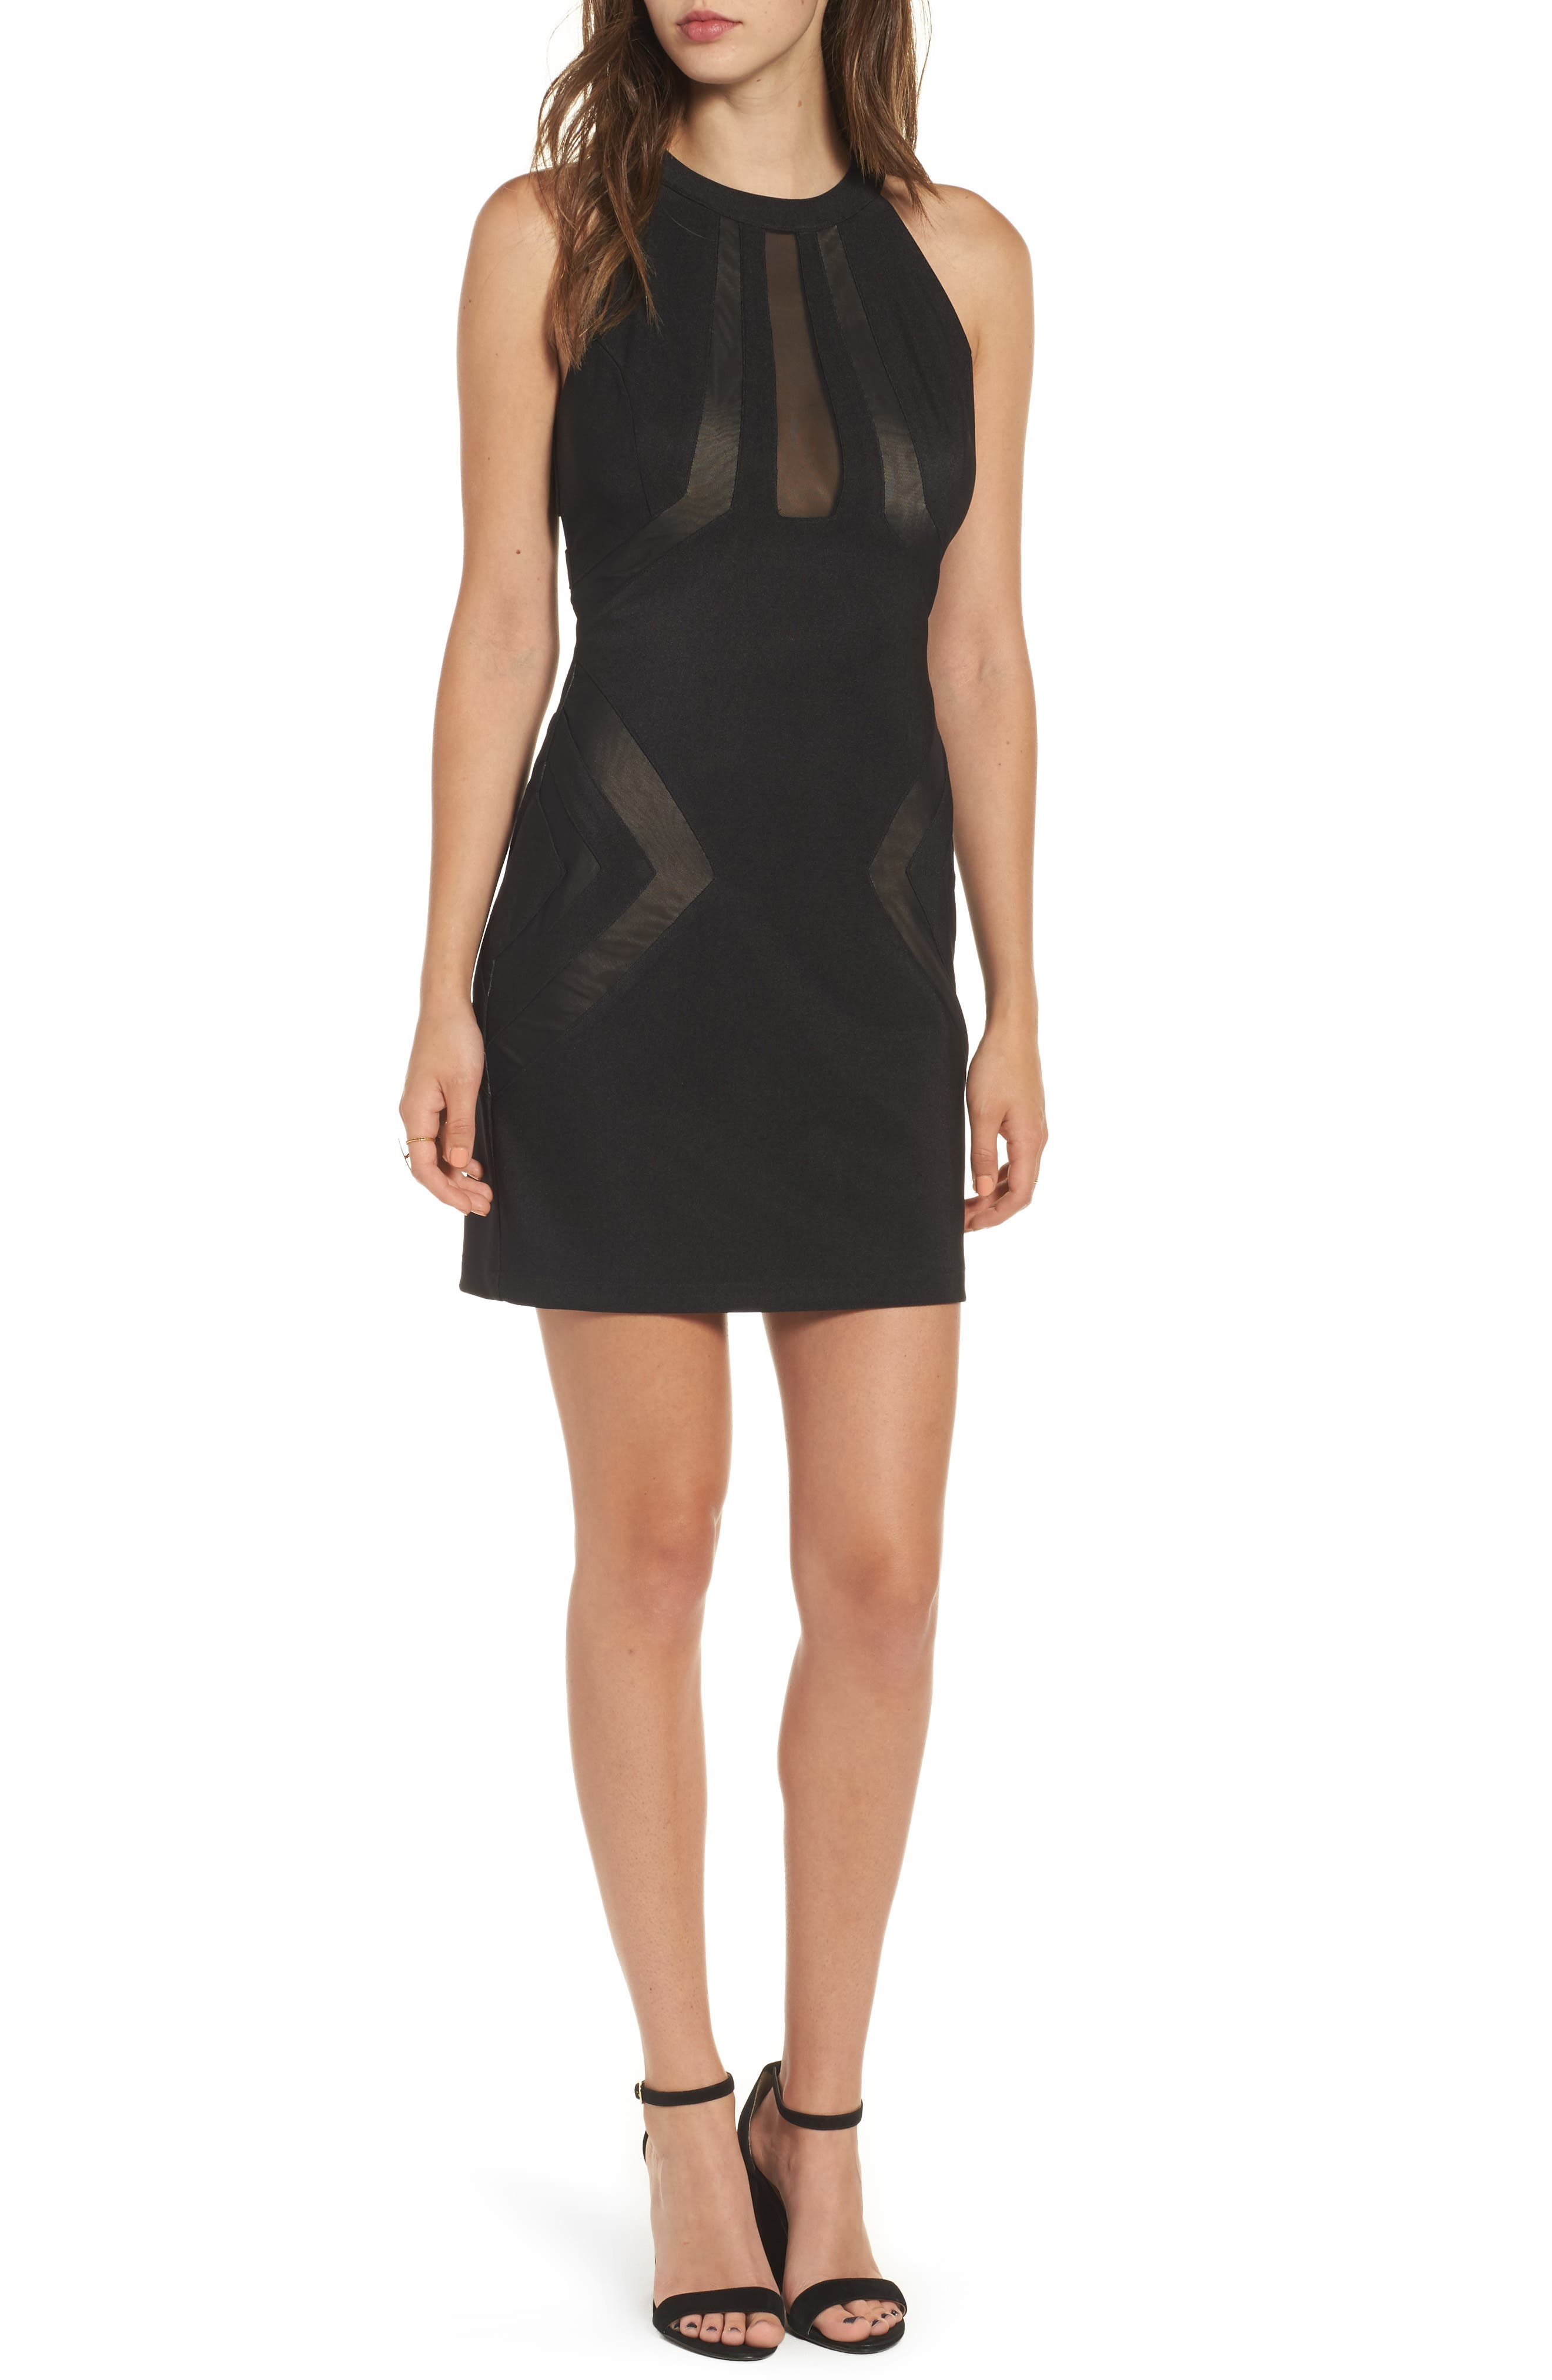 Alternate Image 1 Selected - Love Nickie Lew Mesh Inset Body Con Dress